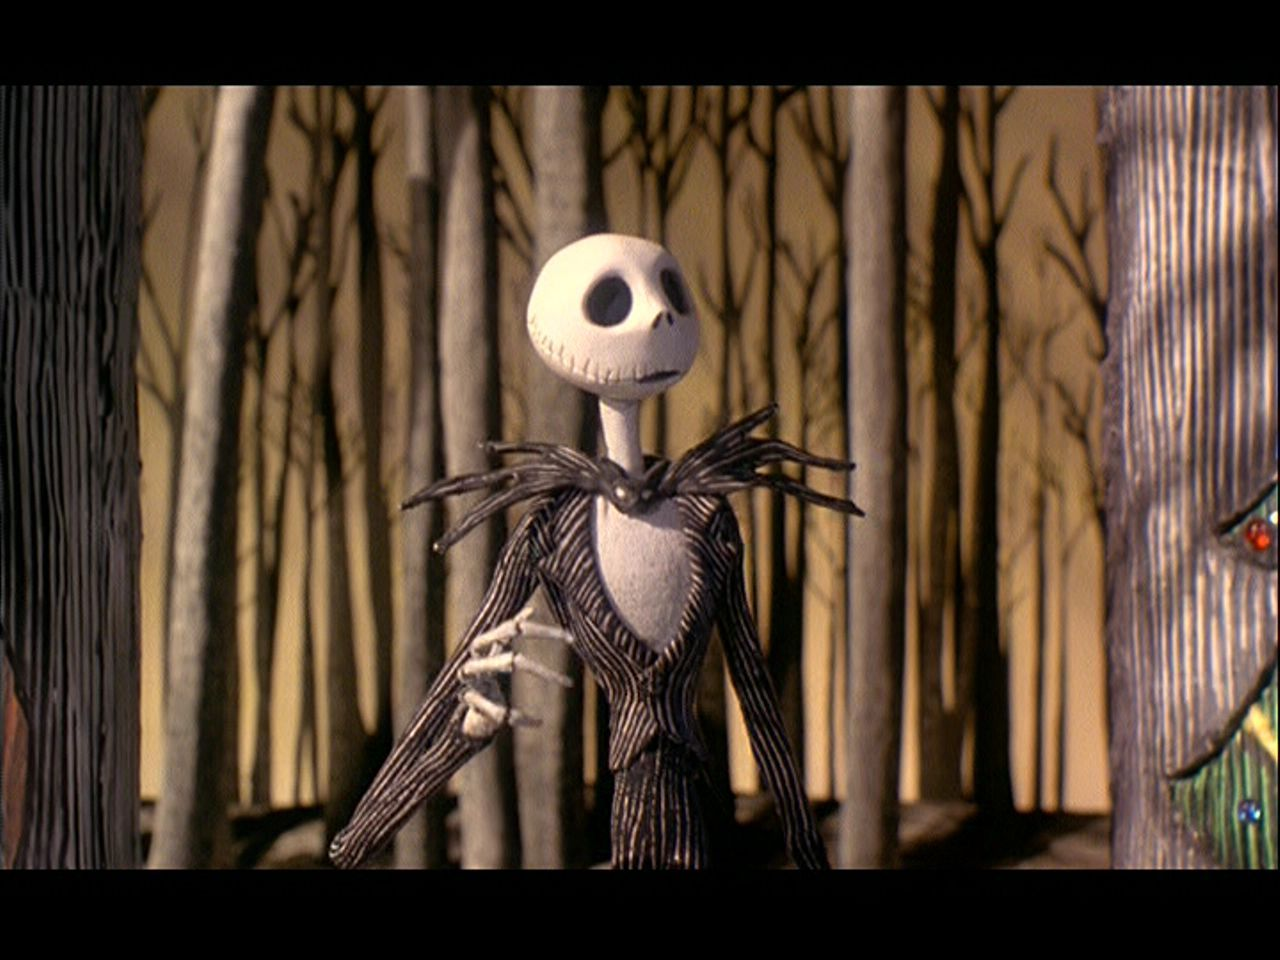 Nightmare Before Christmas images The Nightmare Before Christmas HD ...